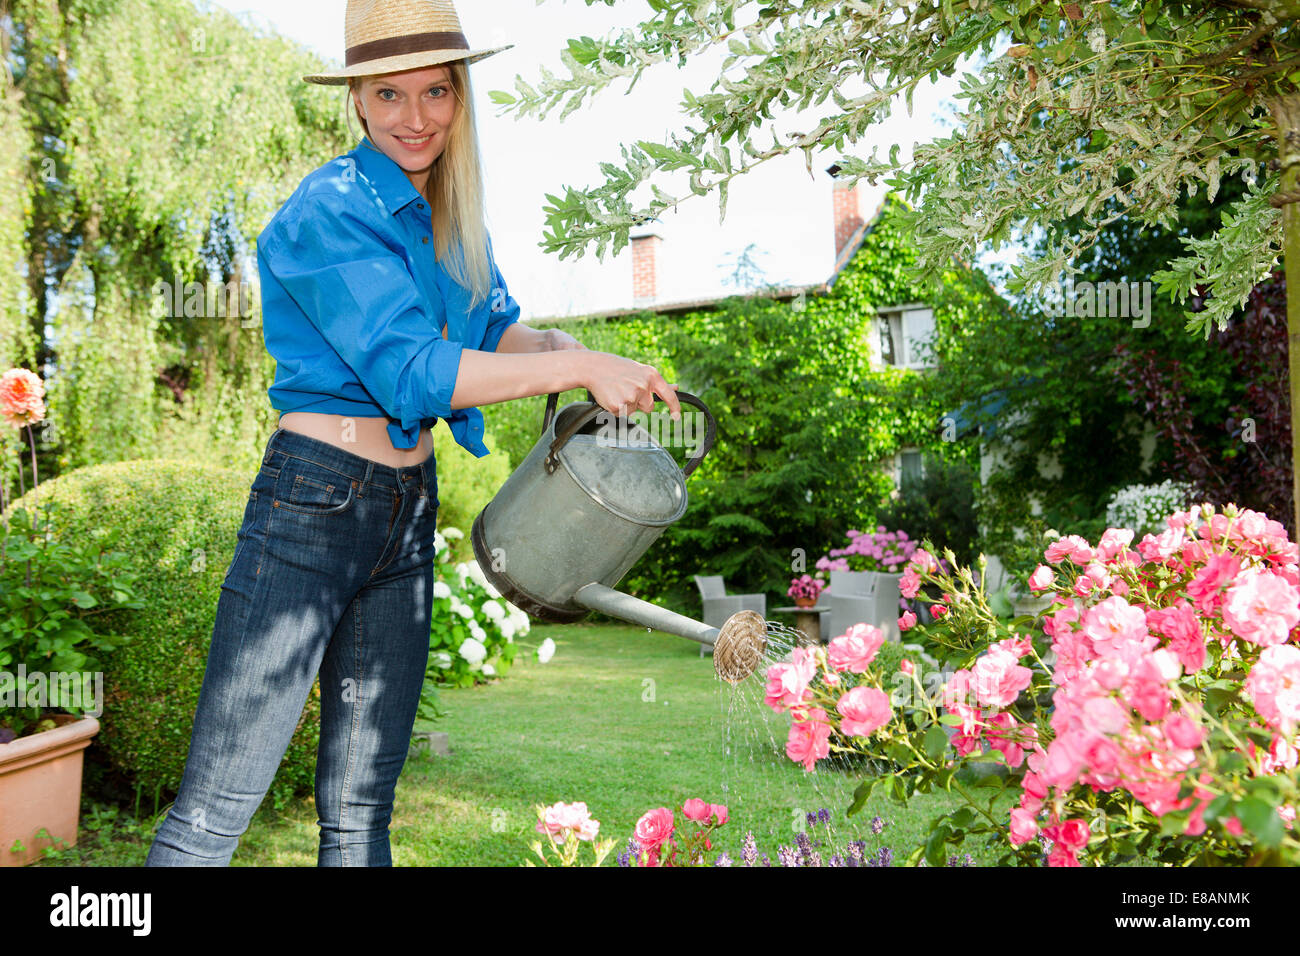 Mid adult woman watering rose bush in garden - Stock Image